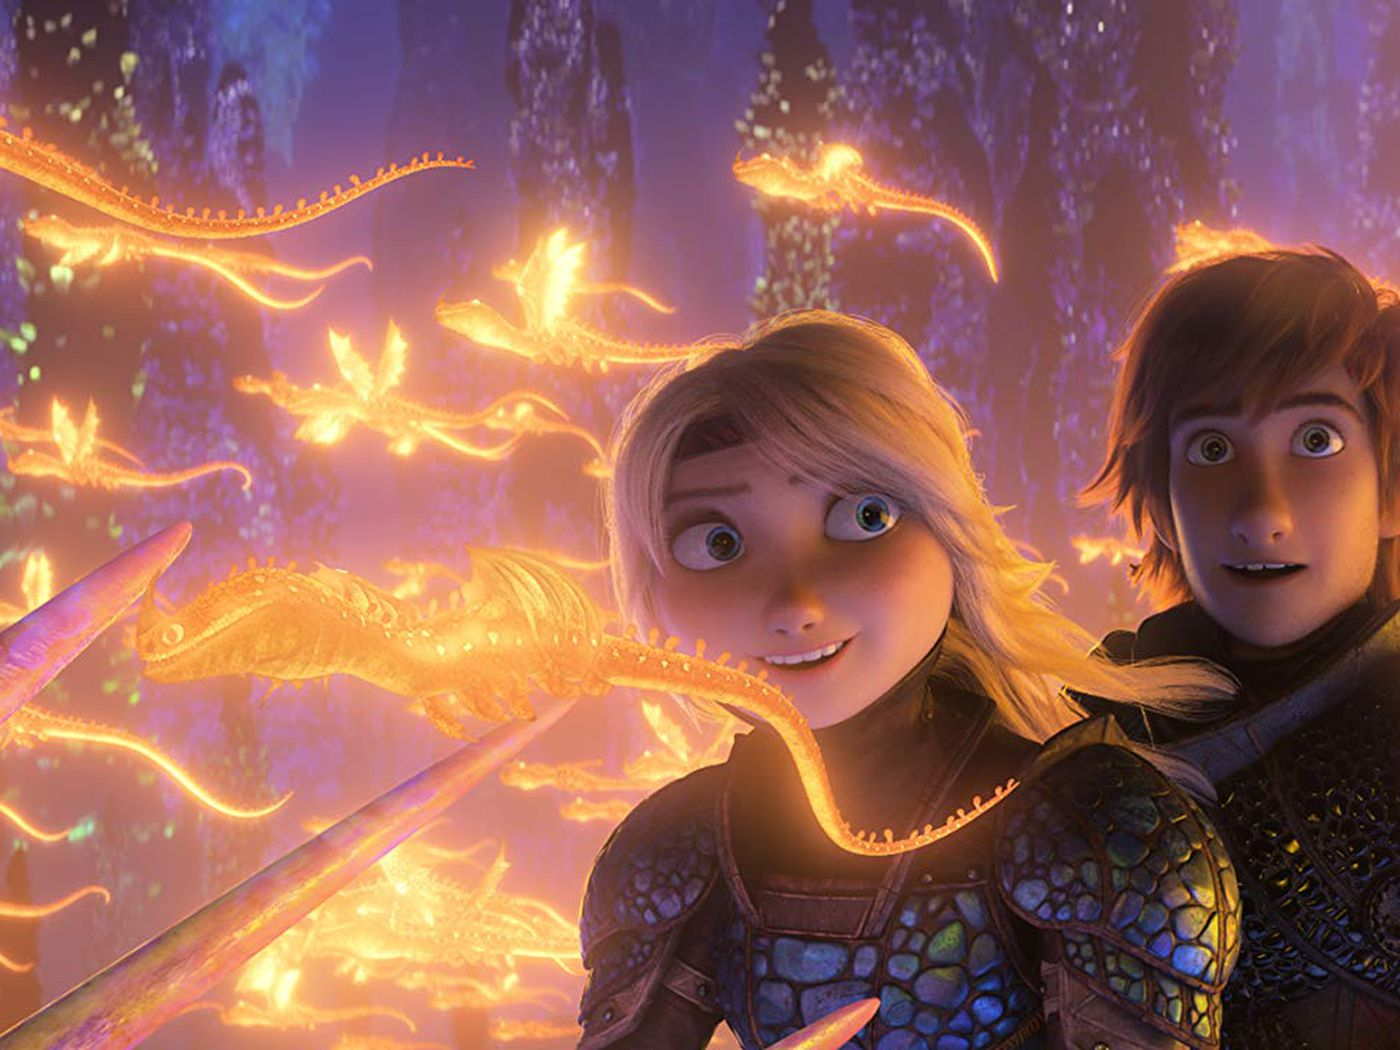 How To Train Your Dragon 3 Review A Simple Movie With A Complex